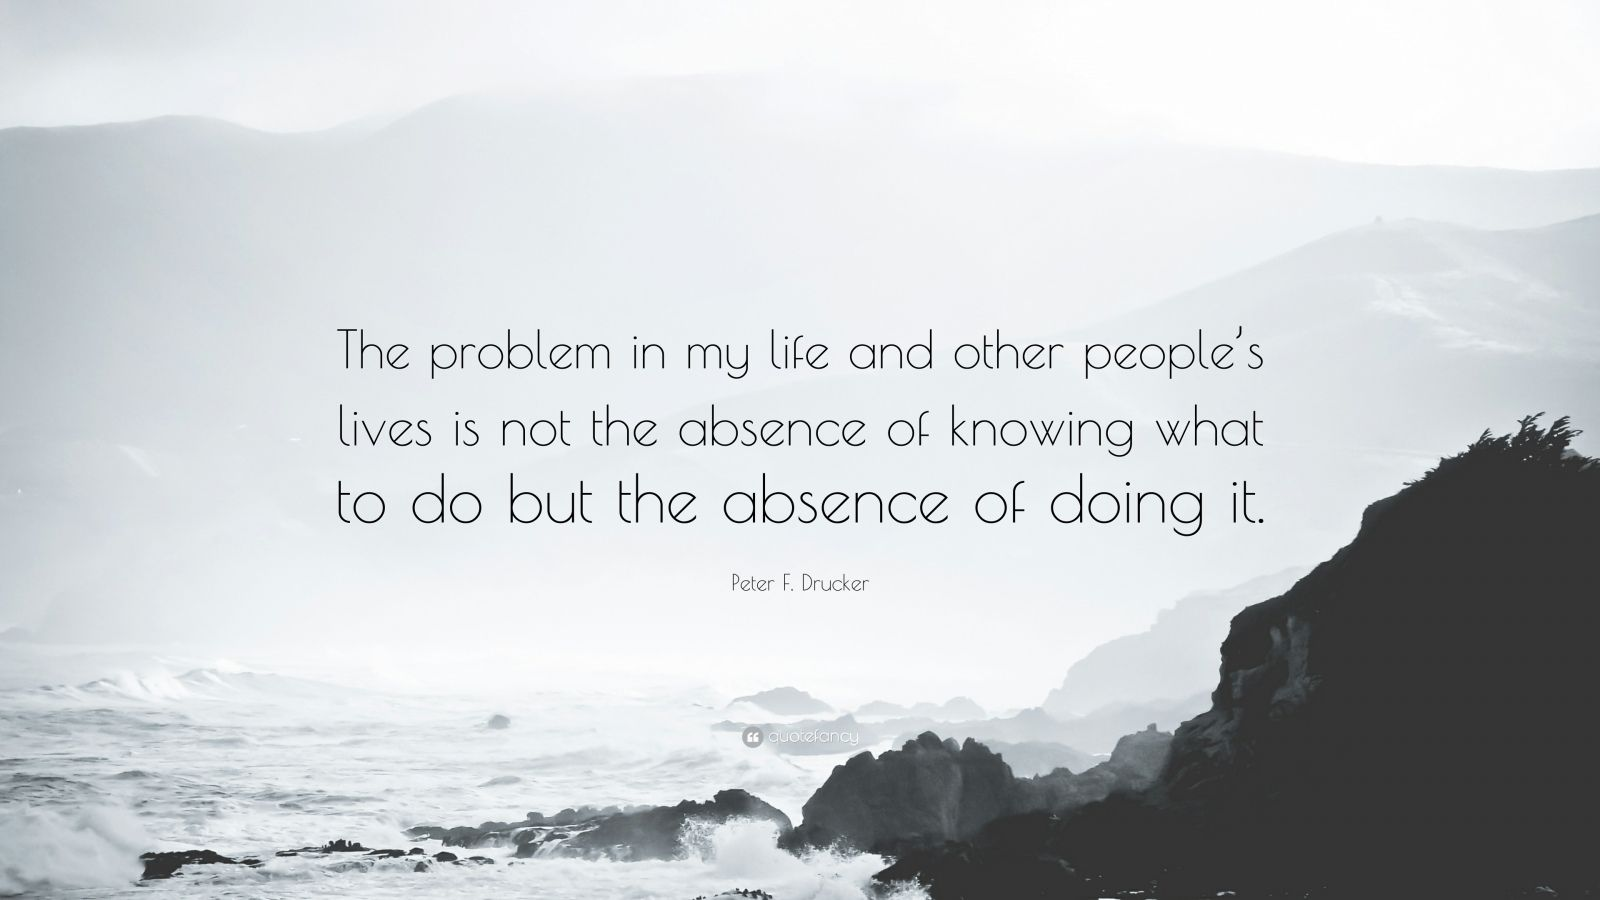 """Peter F. Drucker Quote: """"The problem in my life and other people's lives is not the absence of knowing what to do but the absence of doing it."""""""